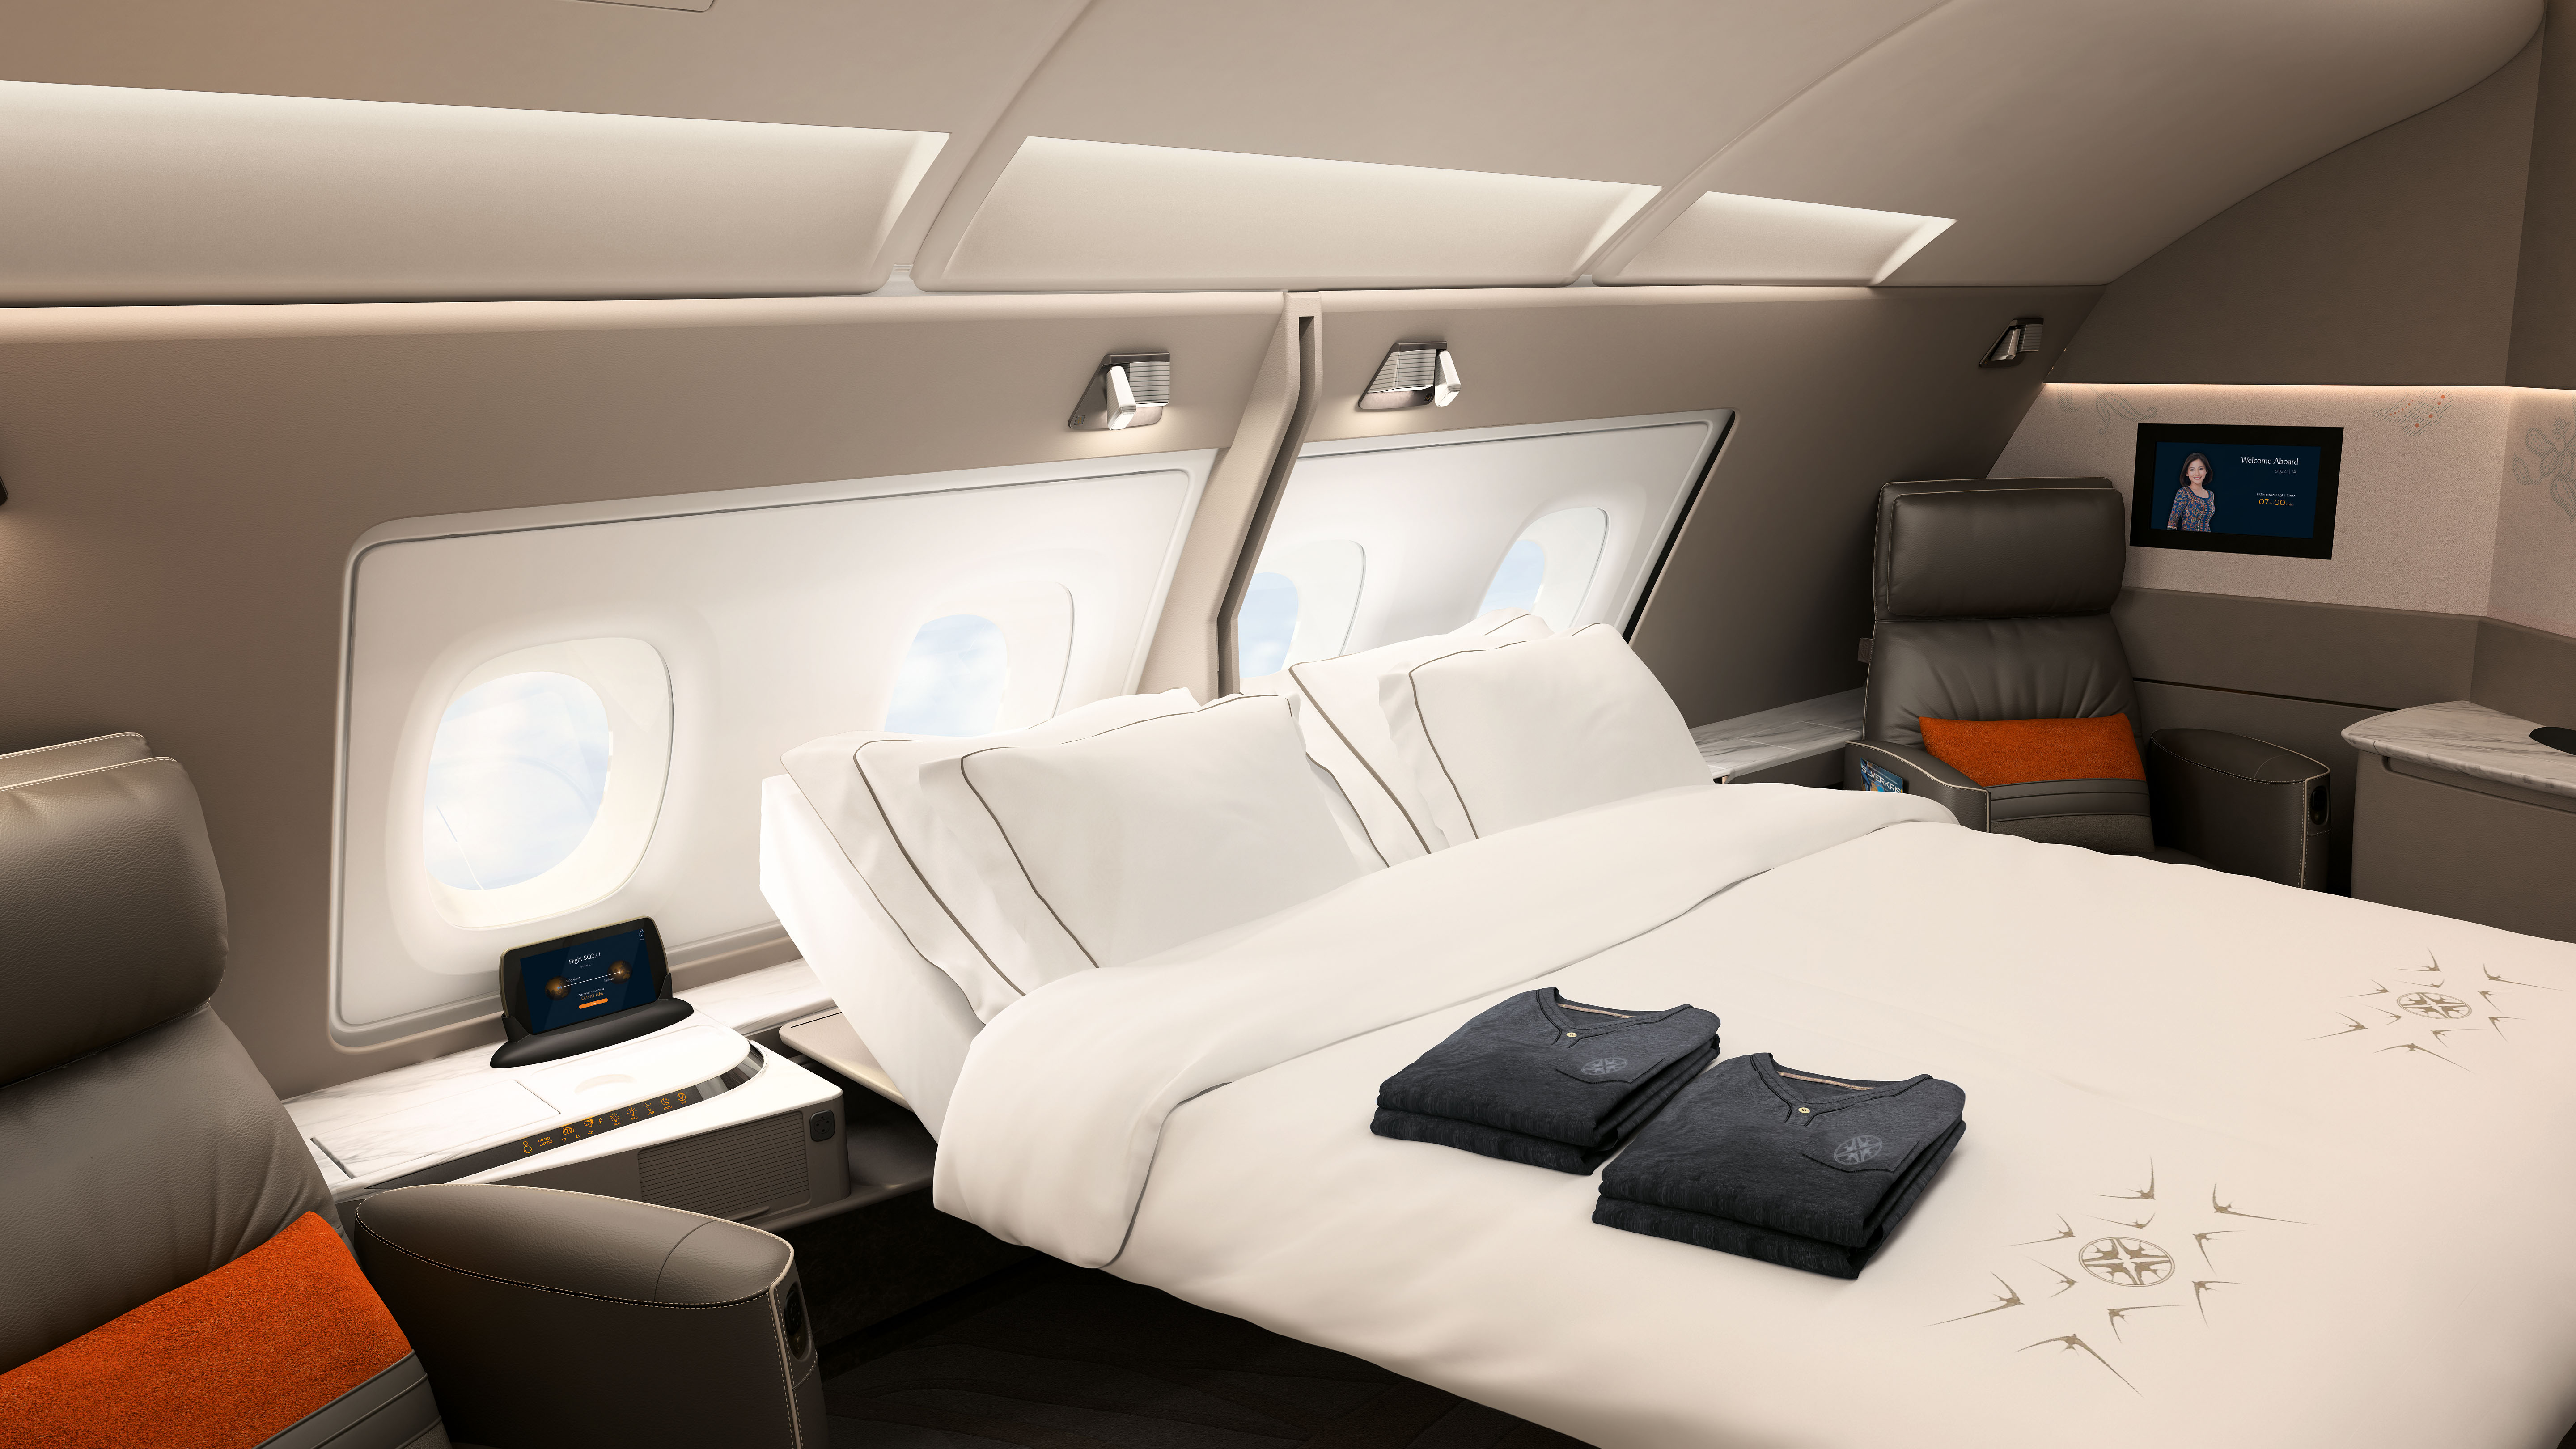 Singapore Airlines' A380 suite, featuring removable walls and double beds.